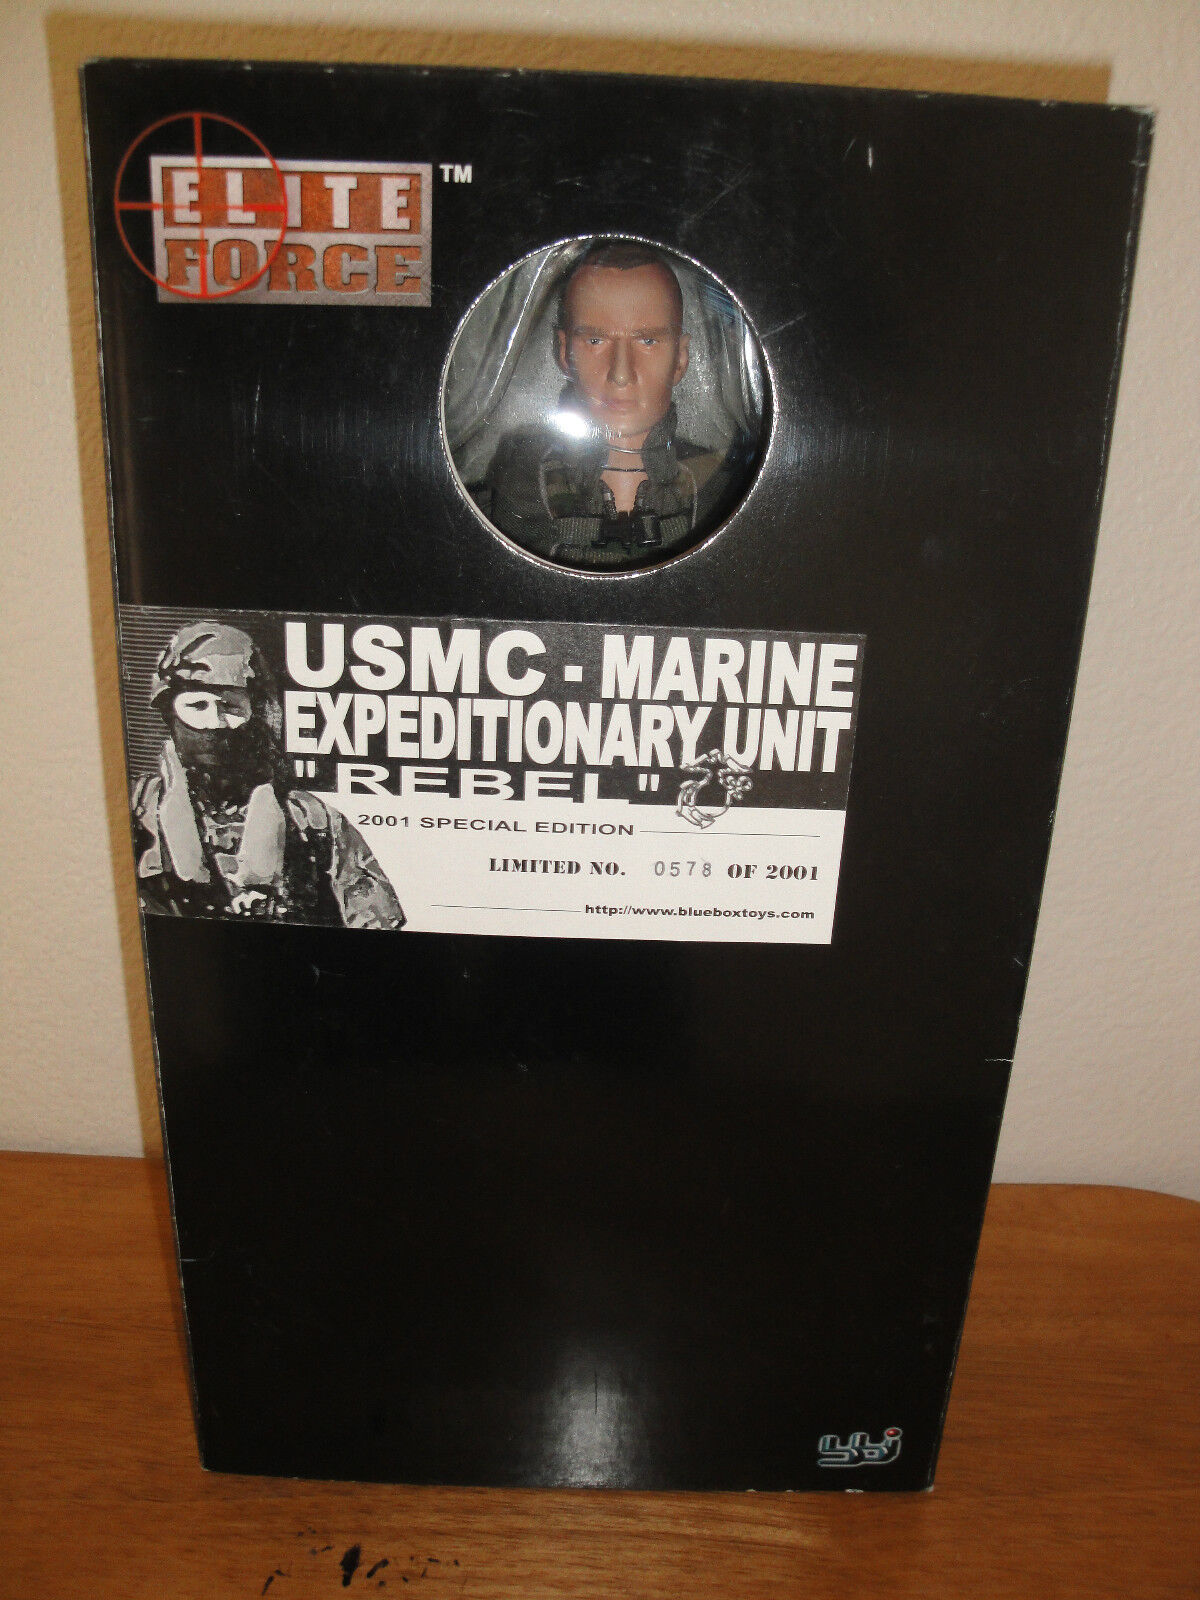 1 6 OR 12 INCHES DRAGON,blueE BOX TOYS MARINE EXPEDITIONARY UNIT REBEL